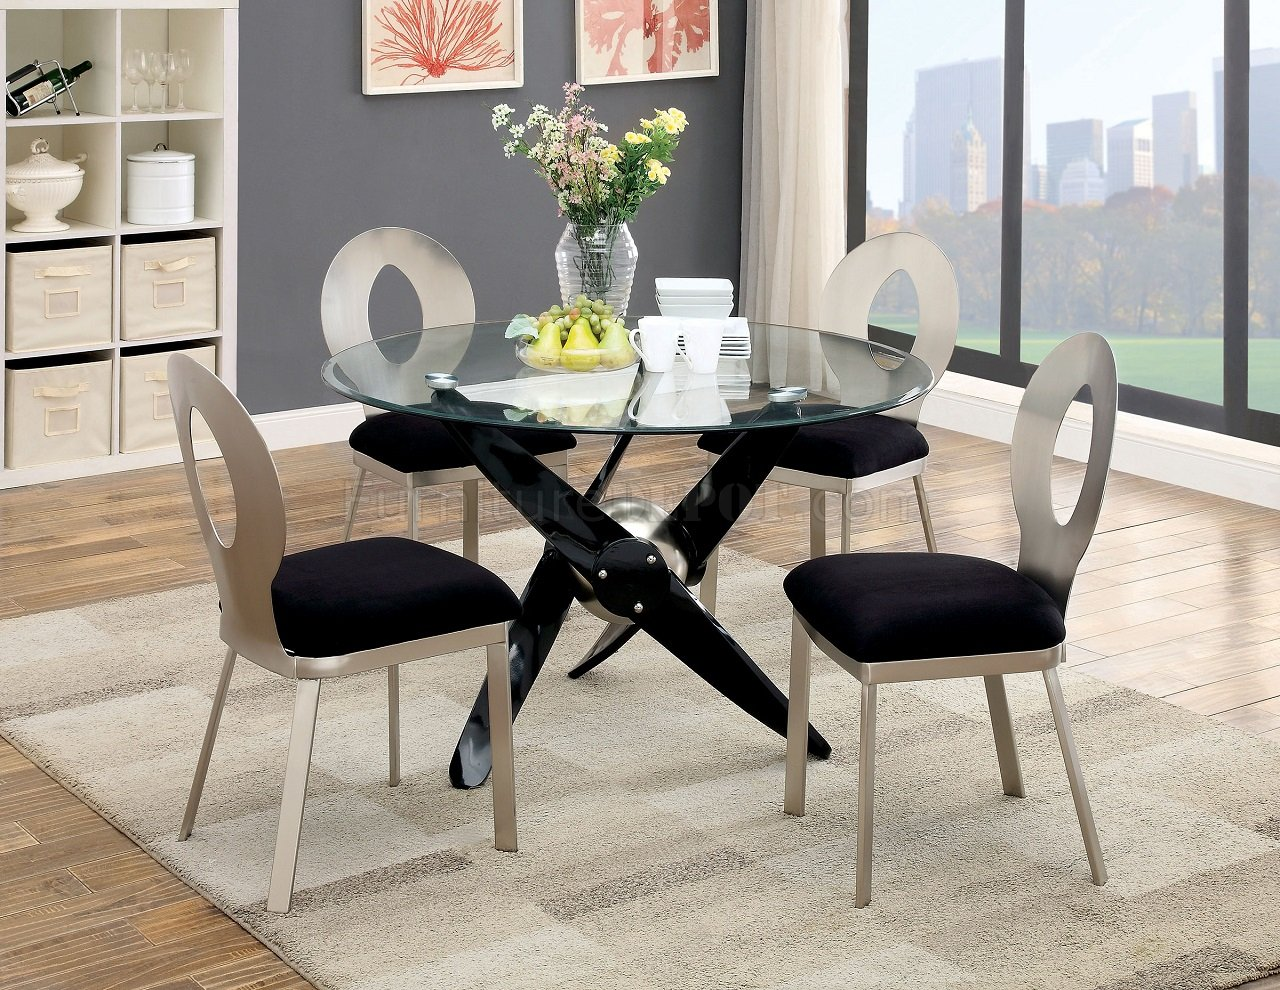 aero cm3169t round dining table w glass top metal frame. Black Bedroom Furniture Sets. Home Design Ideas